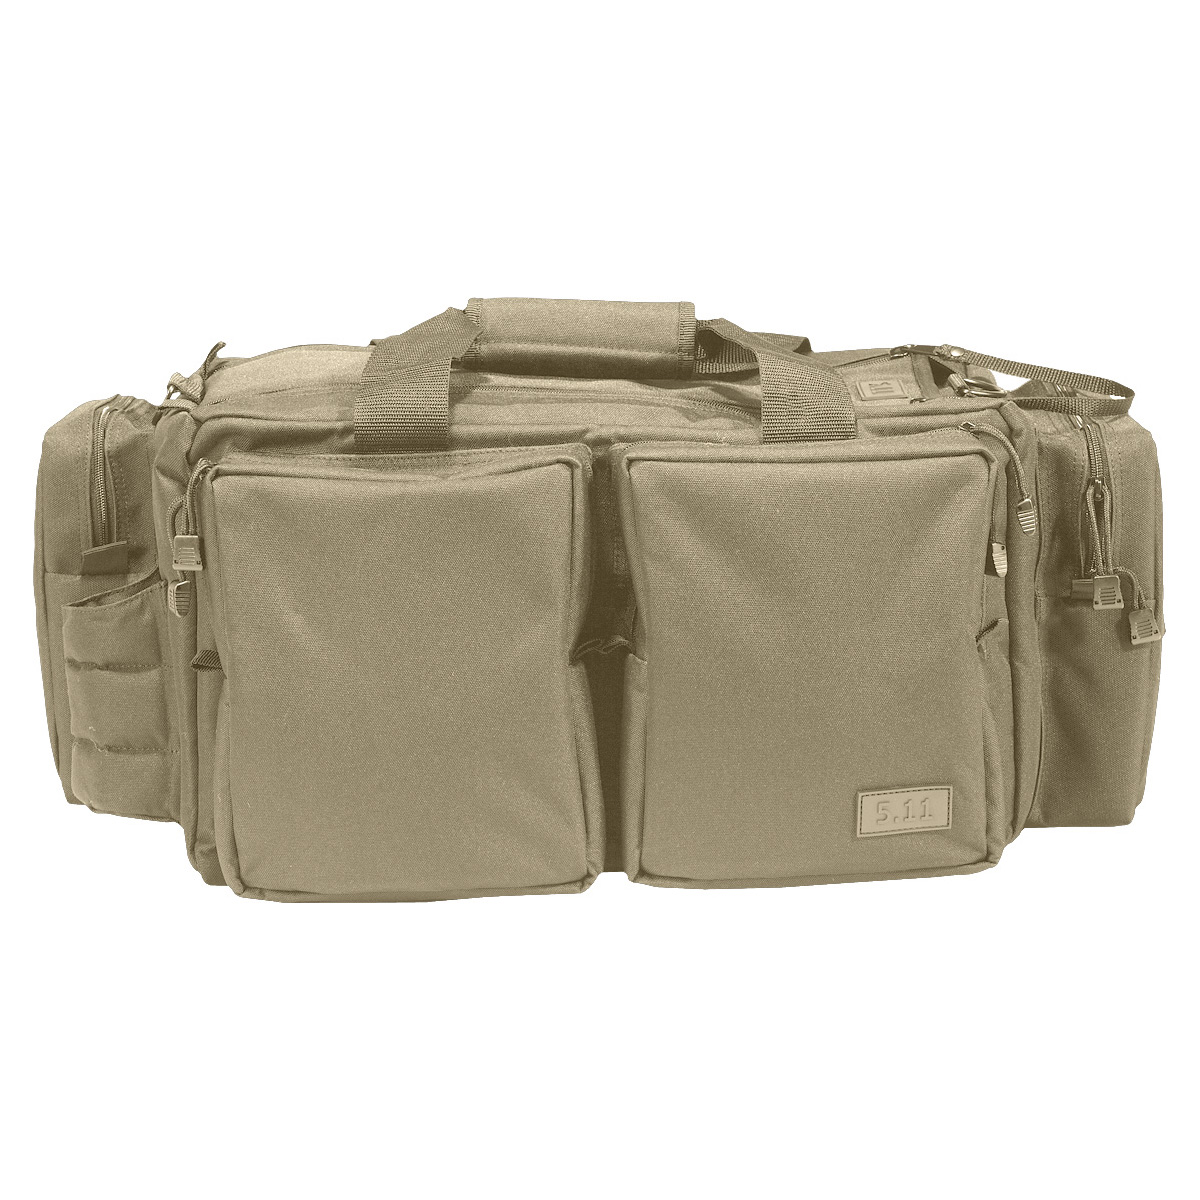 5.11 Tactical Range Ready Bag, Sandstone thumbnail